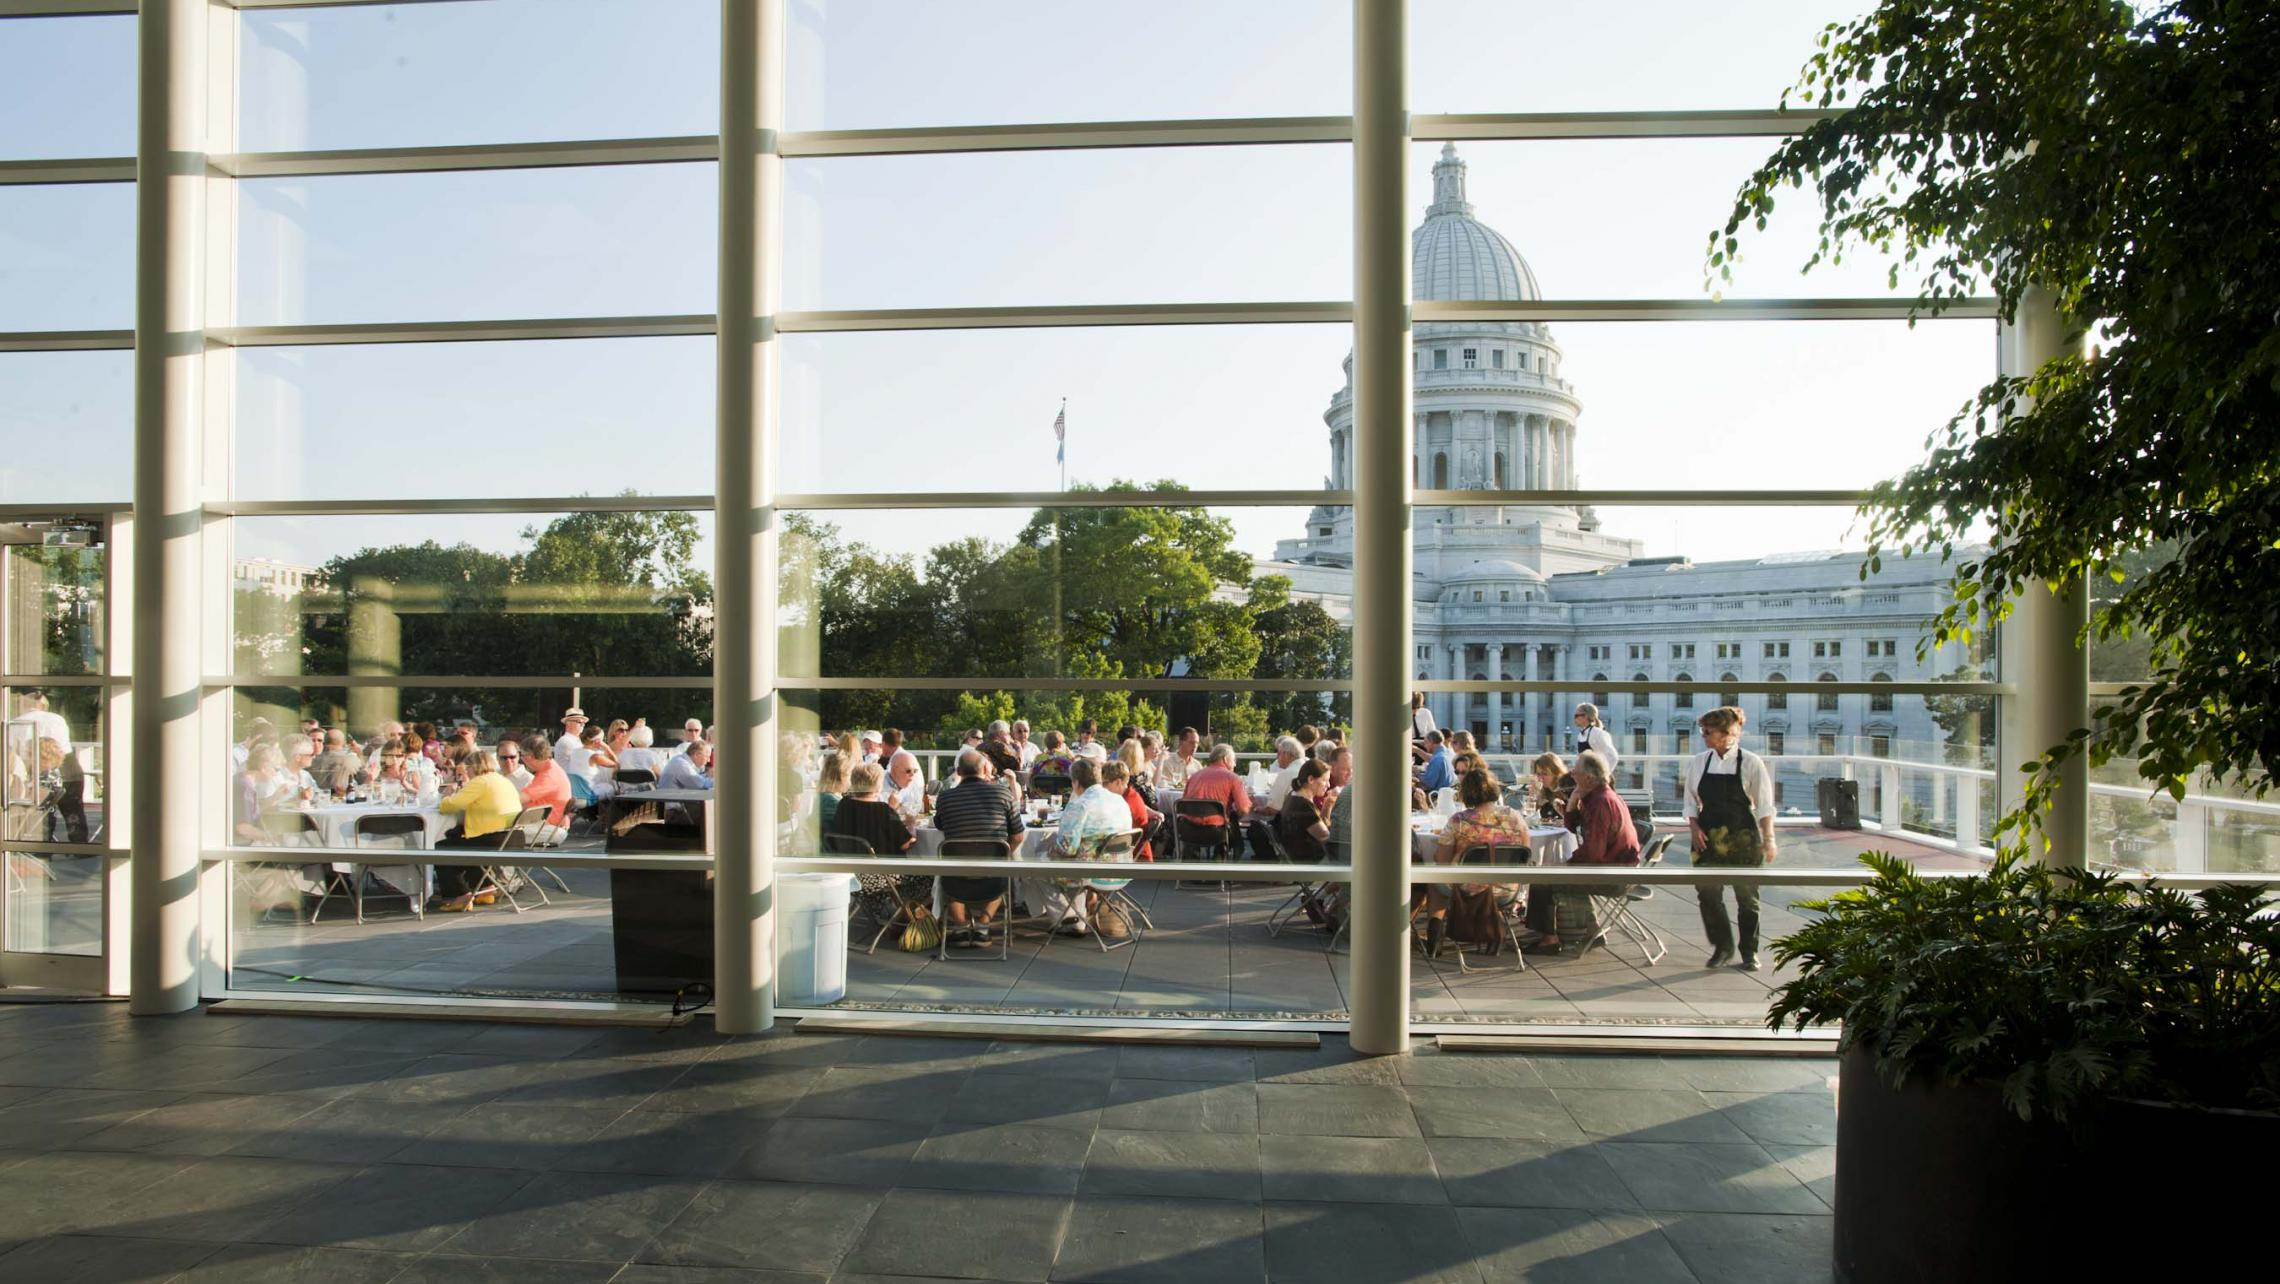 ULI US Bank Plaza - Concerts on the Square Event on Rooftop Terrace